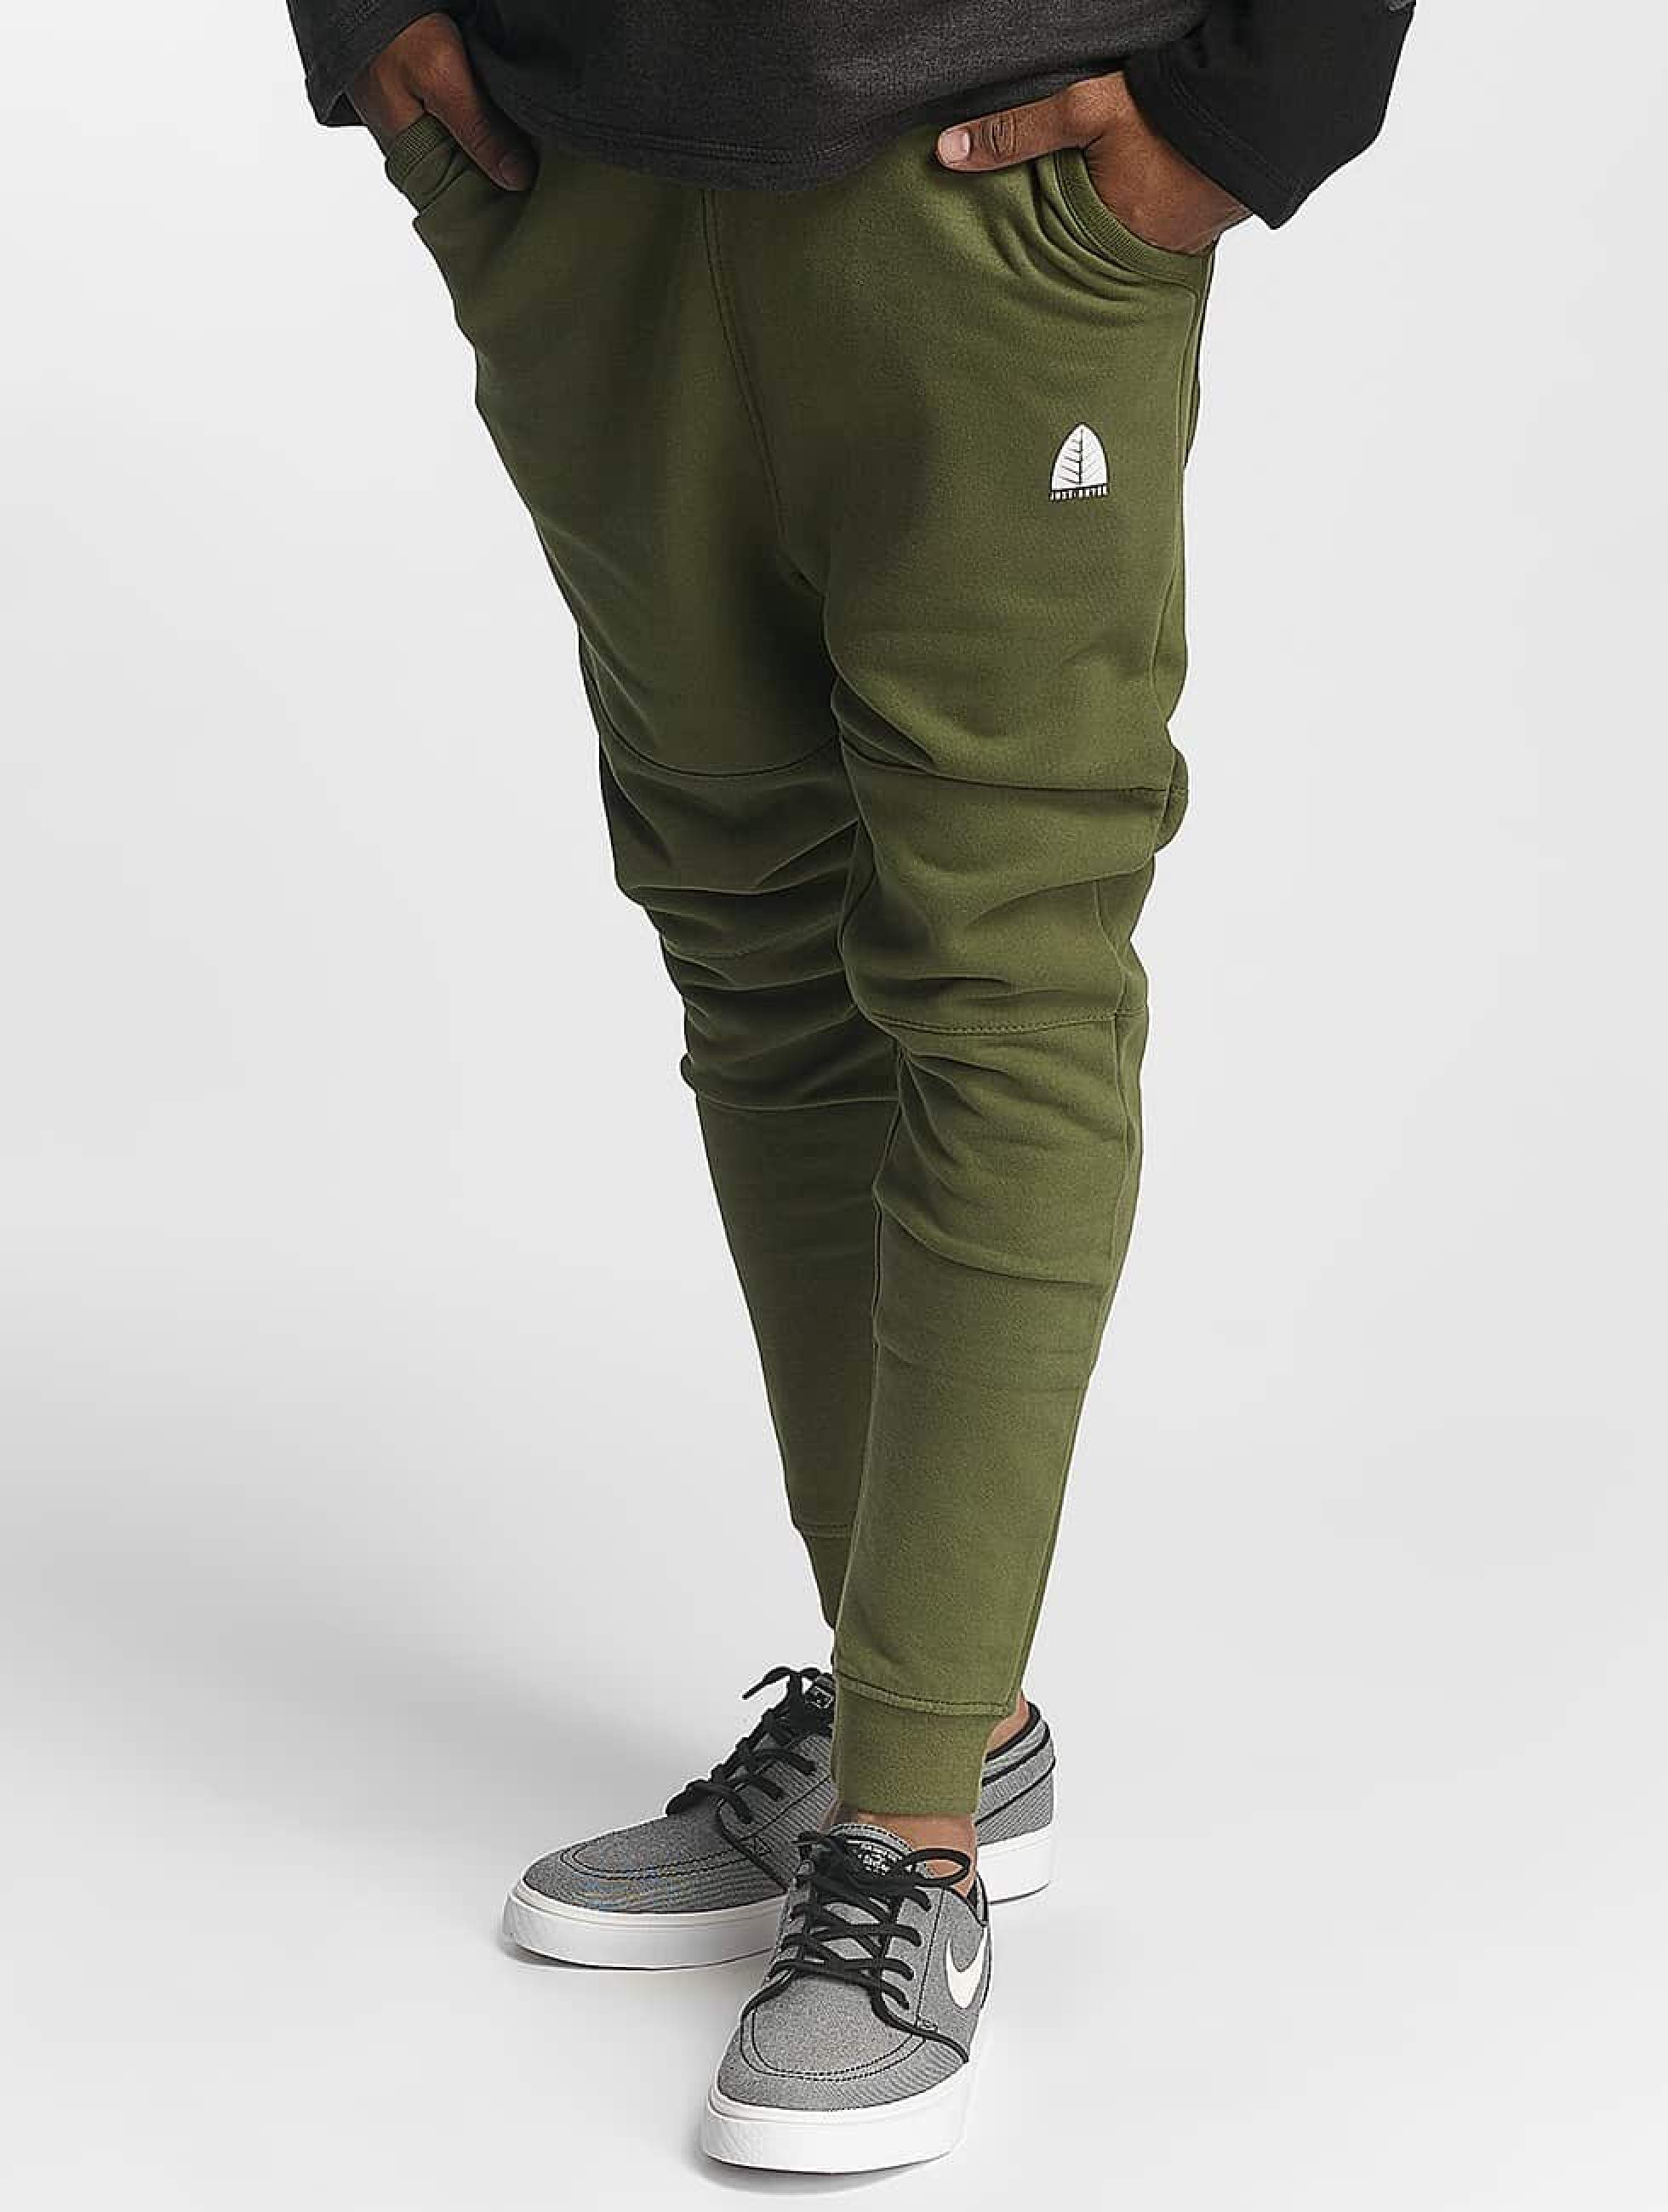 Just Rhyse / Sweat Pant Chilkat in olive 3XL